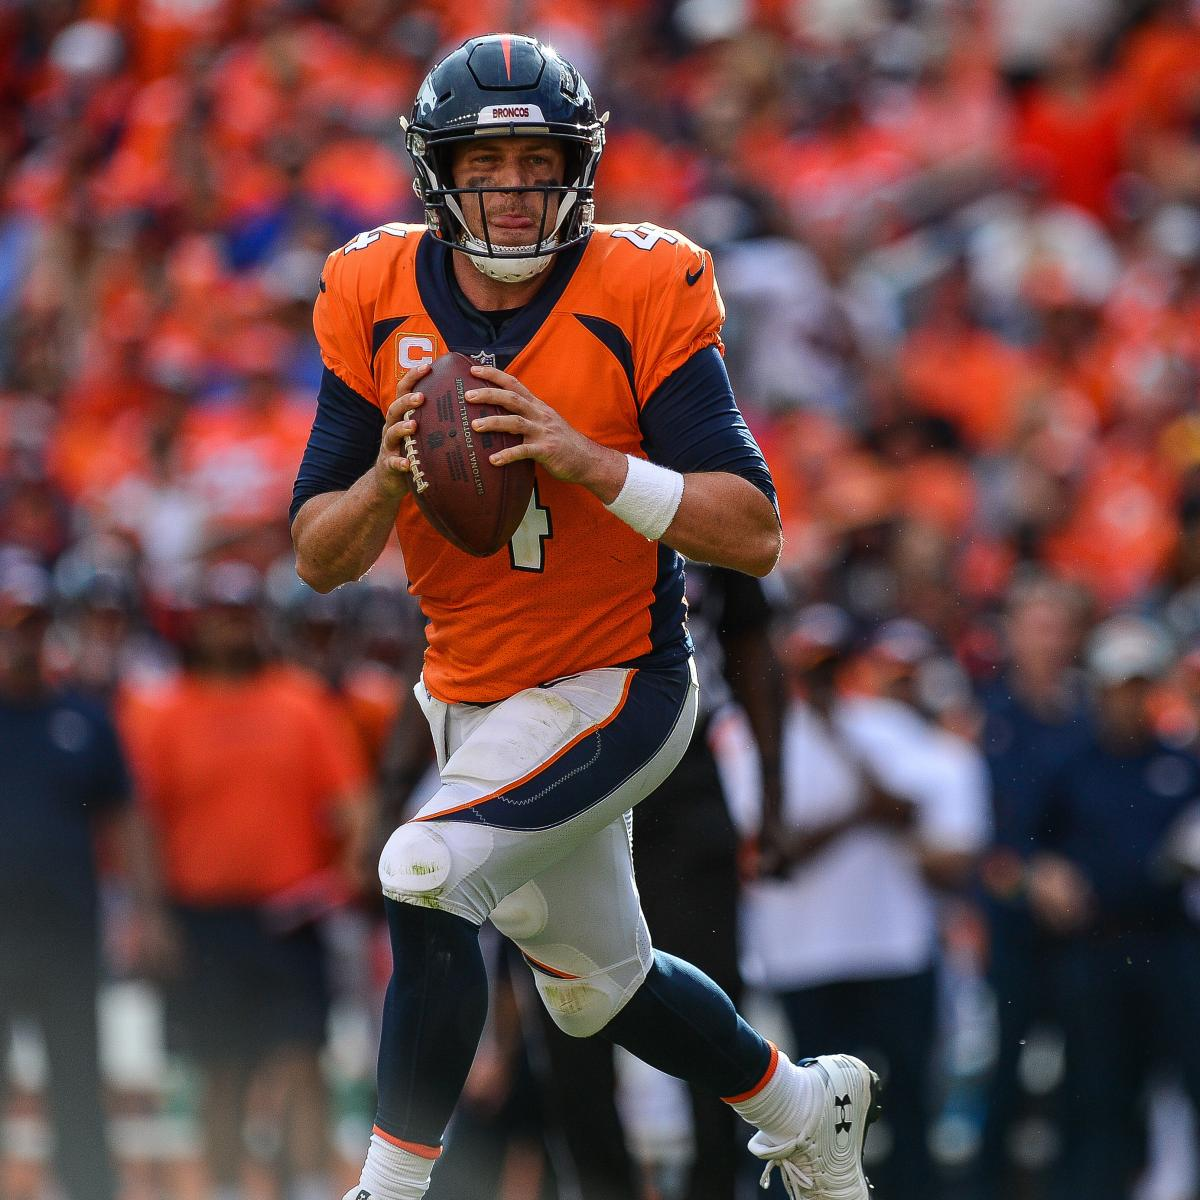 Oakland Raiders Vs. Denver Broncos: Odds, Analysis, NFL